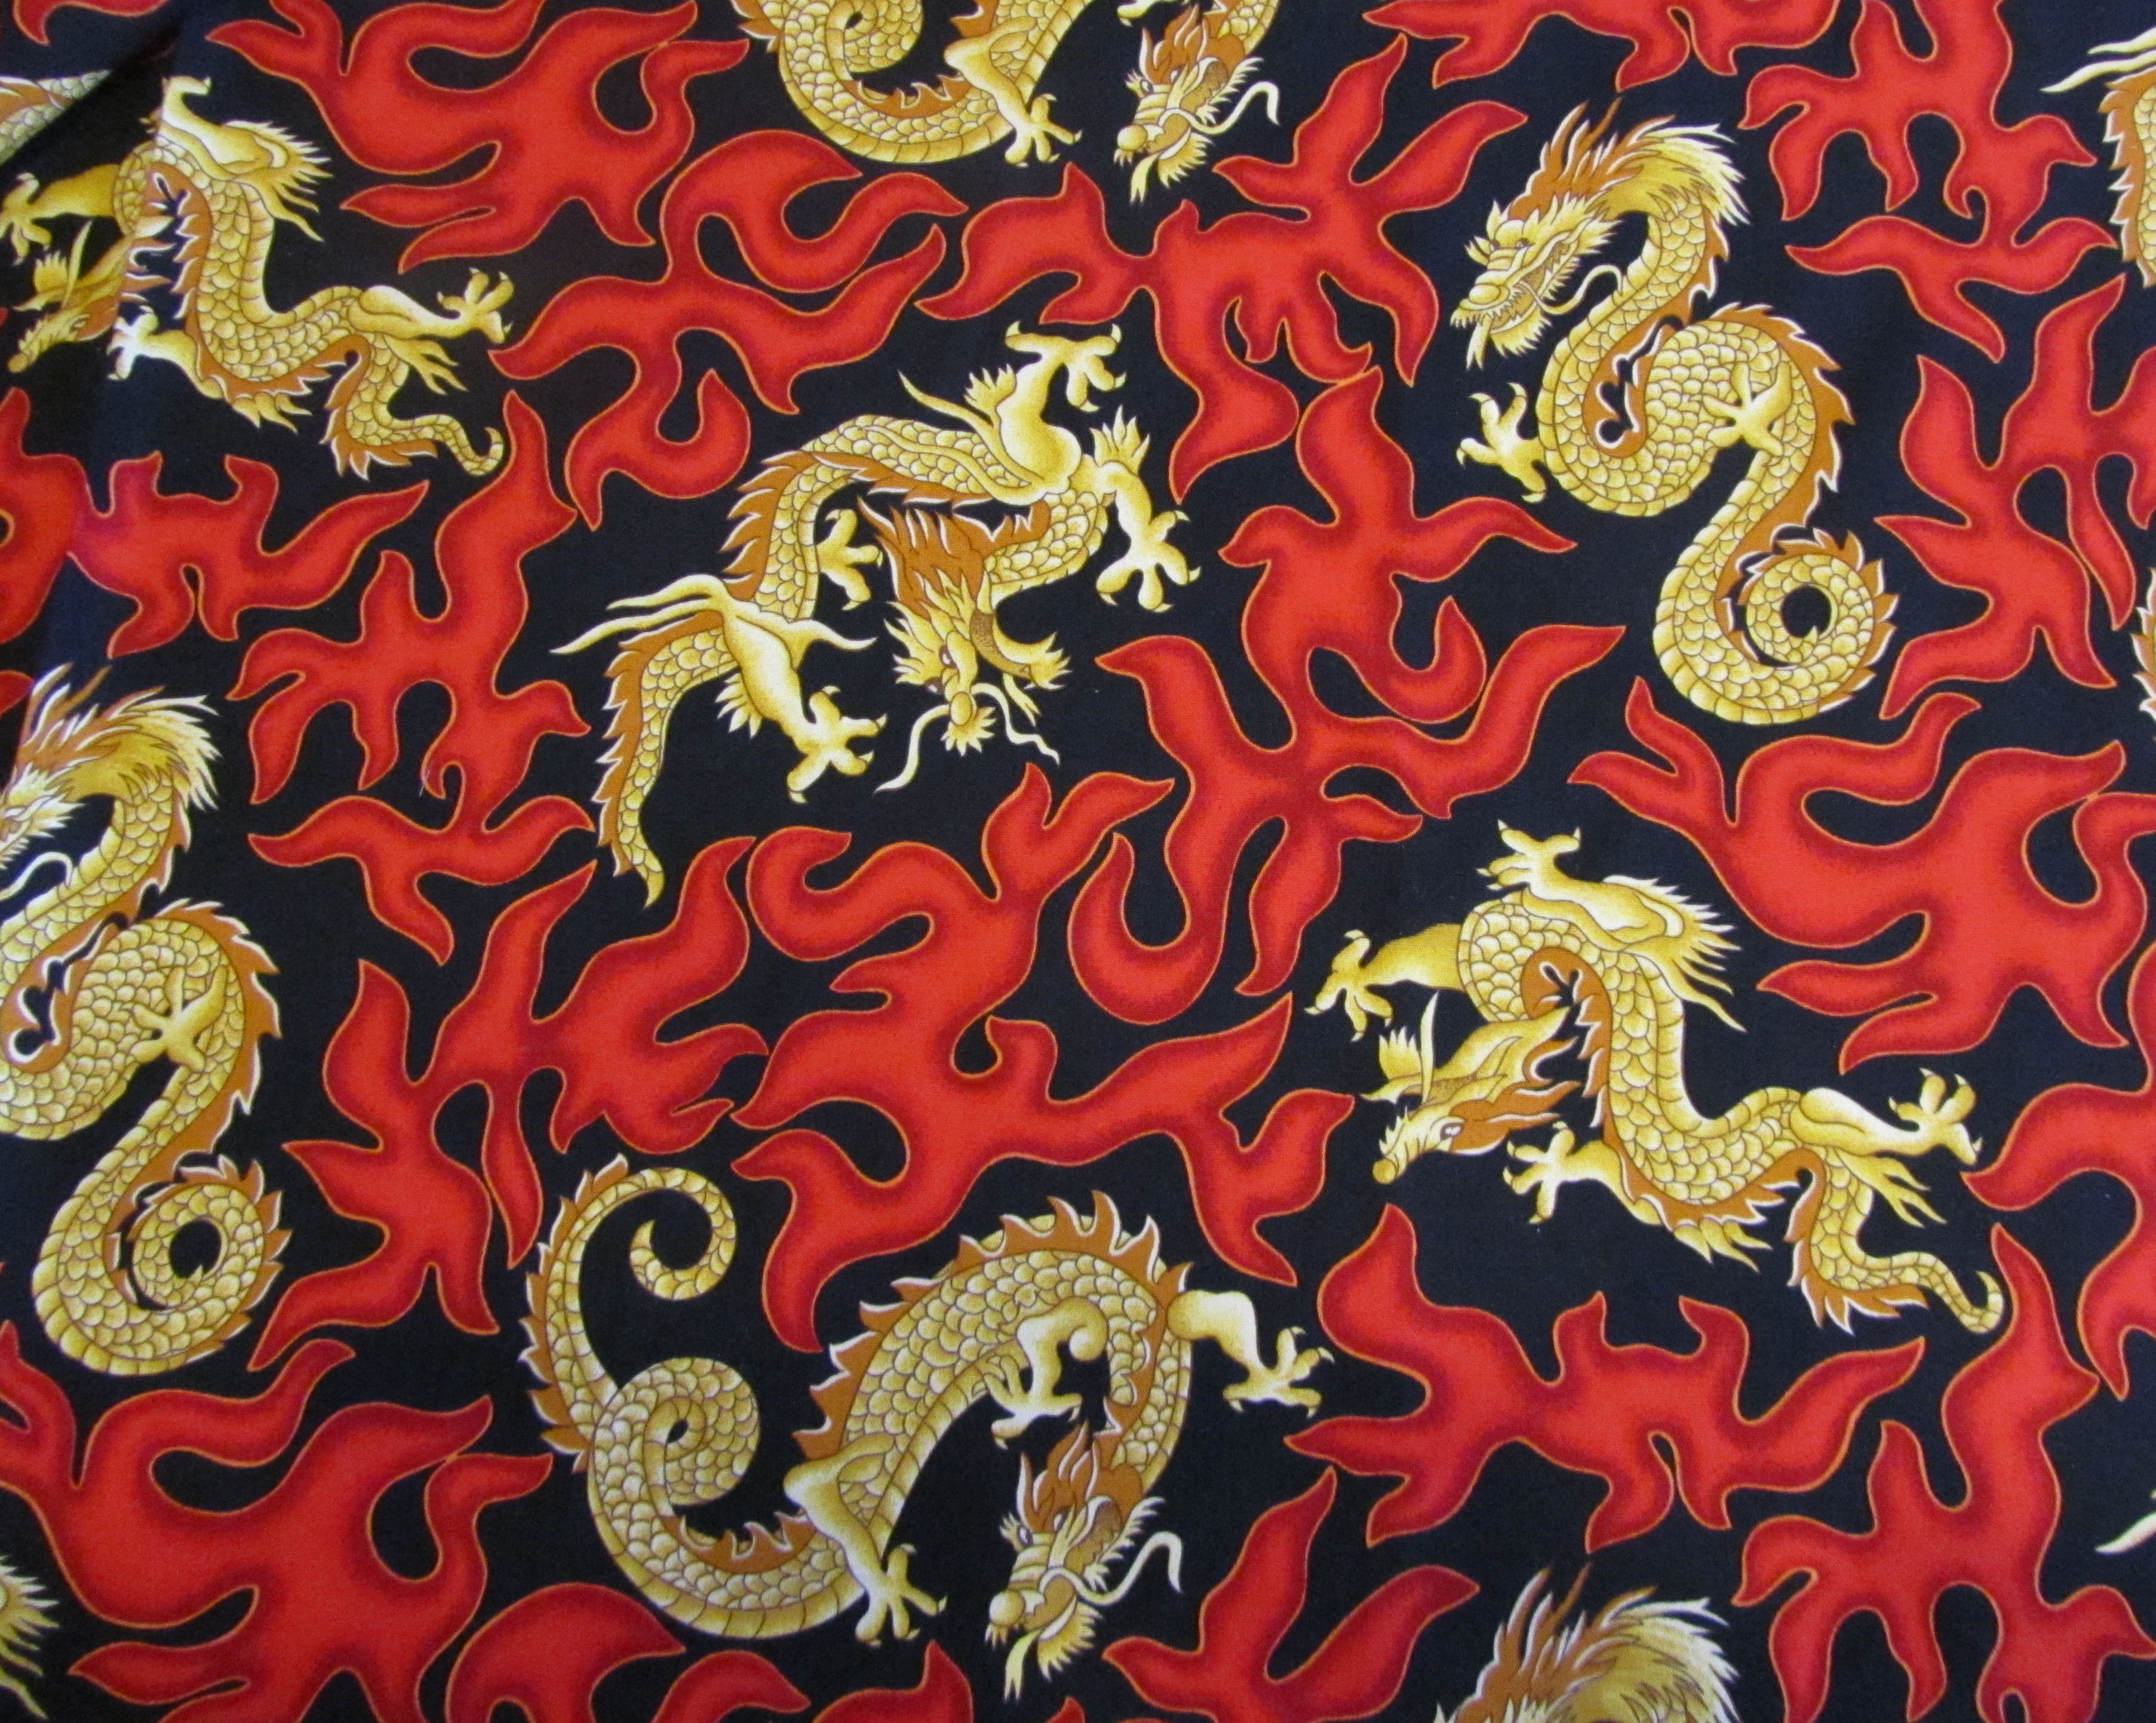 Chinese Fabric Patterns Unique Inspiration Design